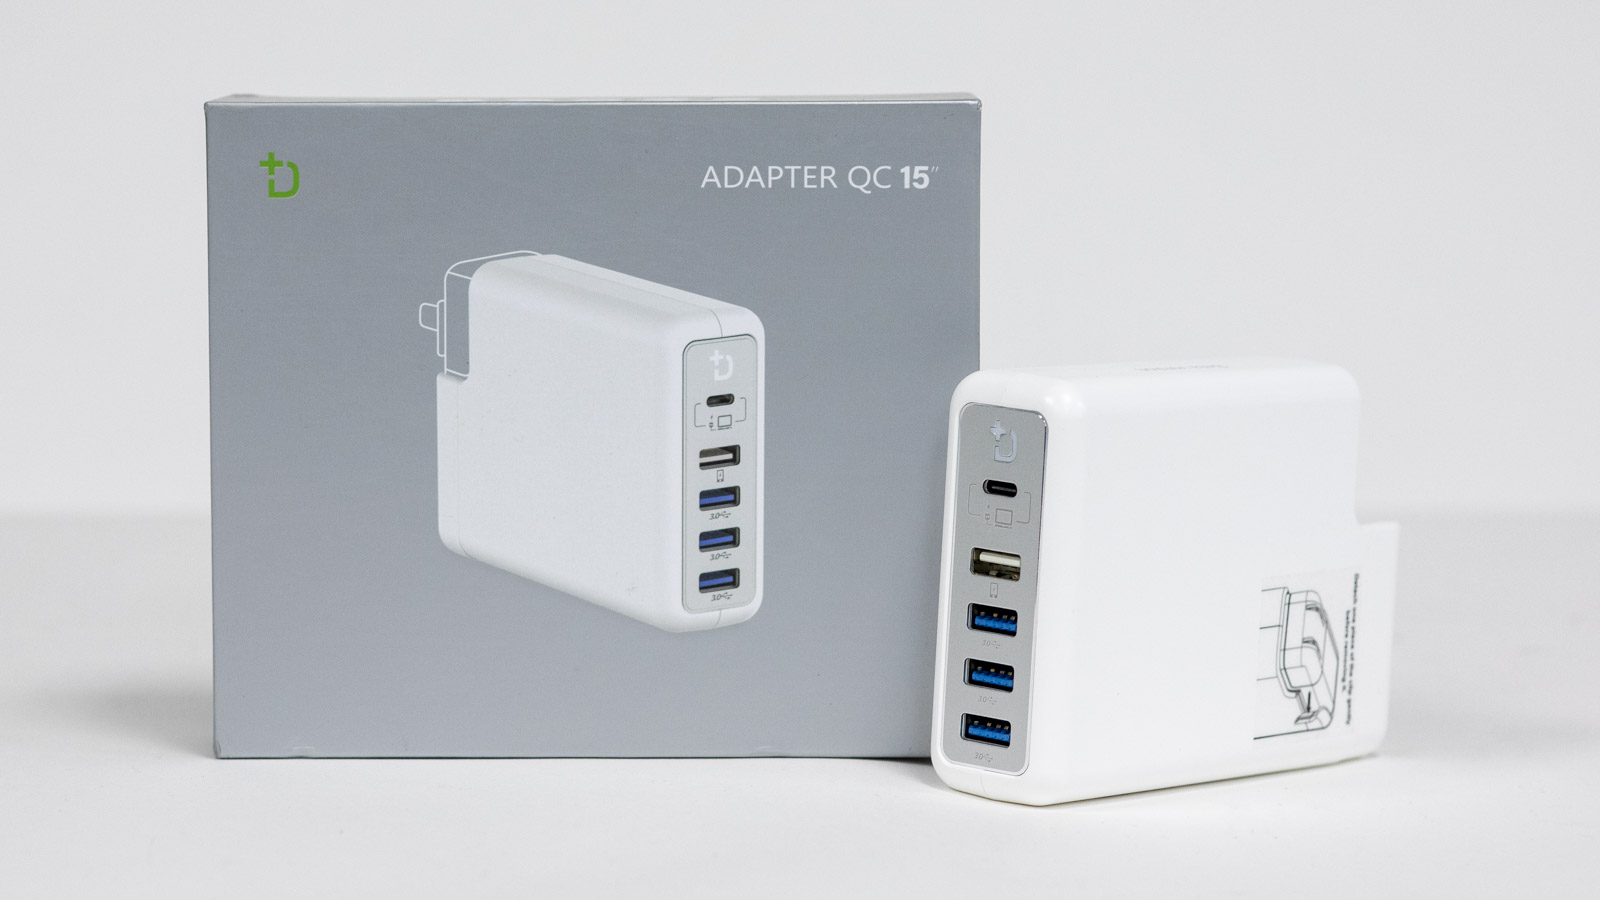 DockCase P1 Adapter: A USB-C Hub that Connects to Your